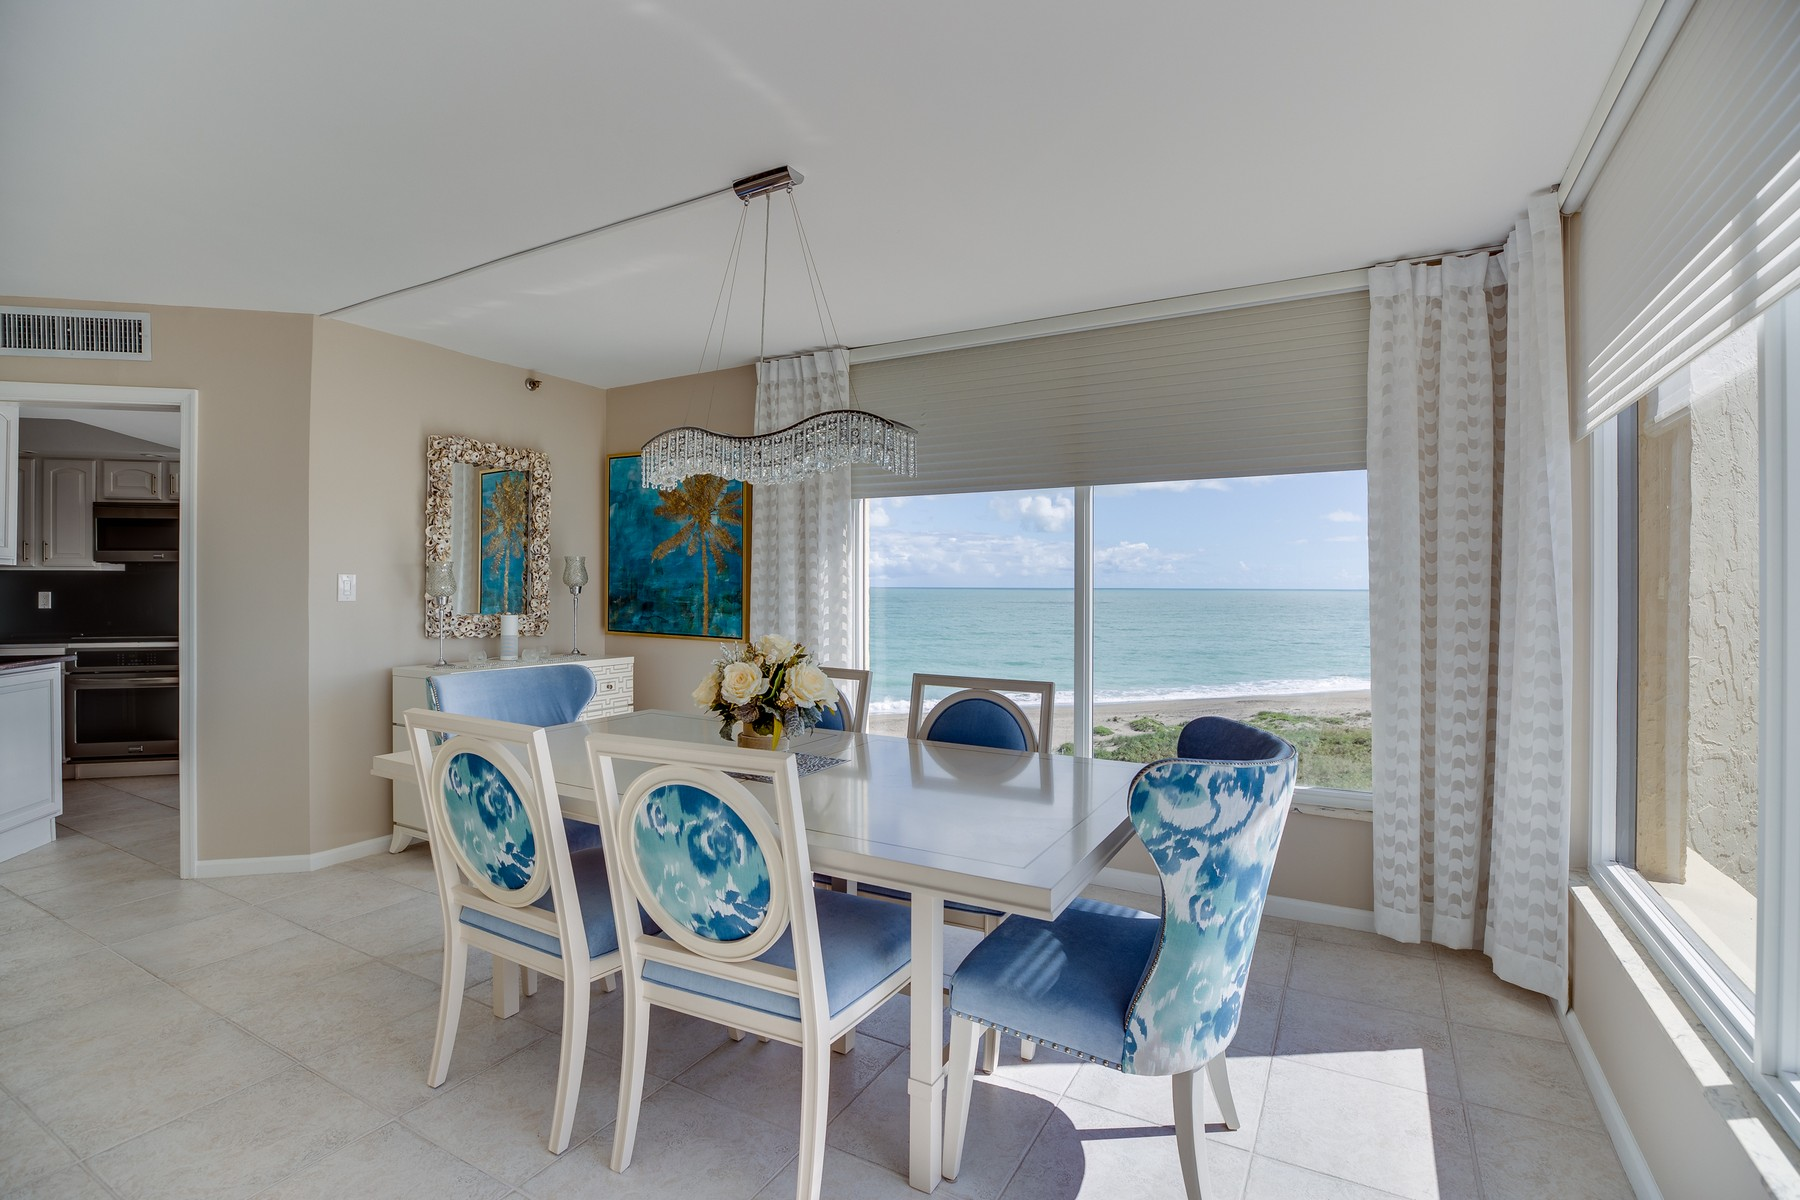 Property for Sale at Sensational Ocean and River Views! 2400 S Ocean Drive #8174 Fort Pierce, Florida 34949 United States